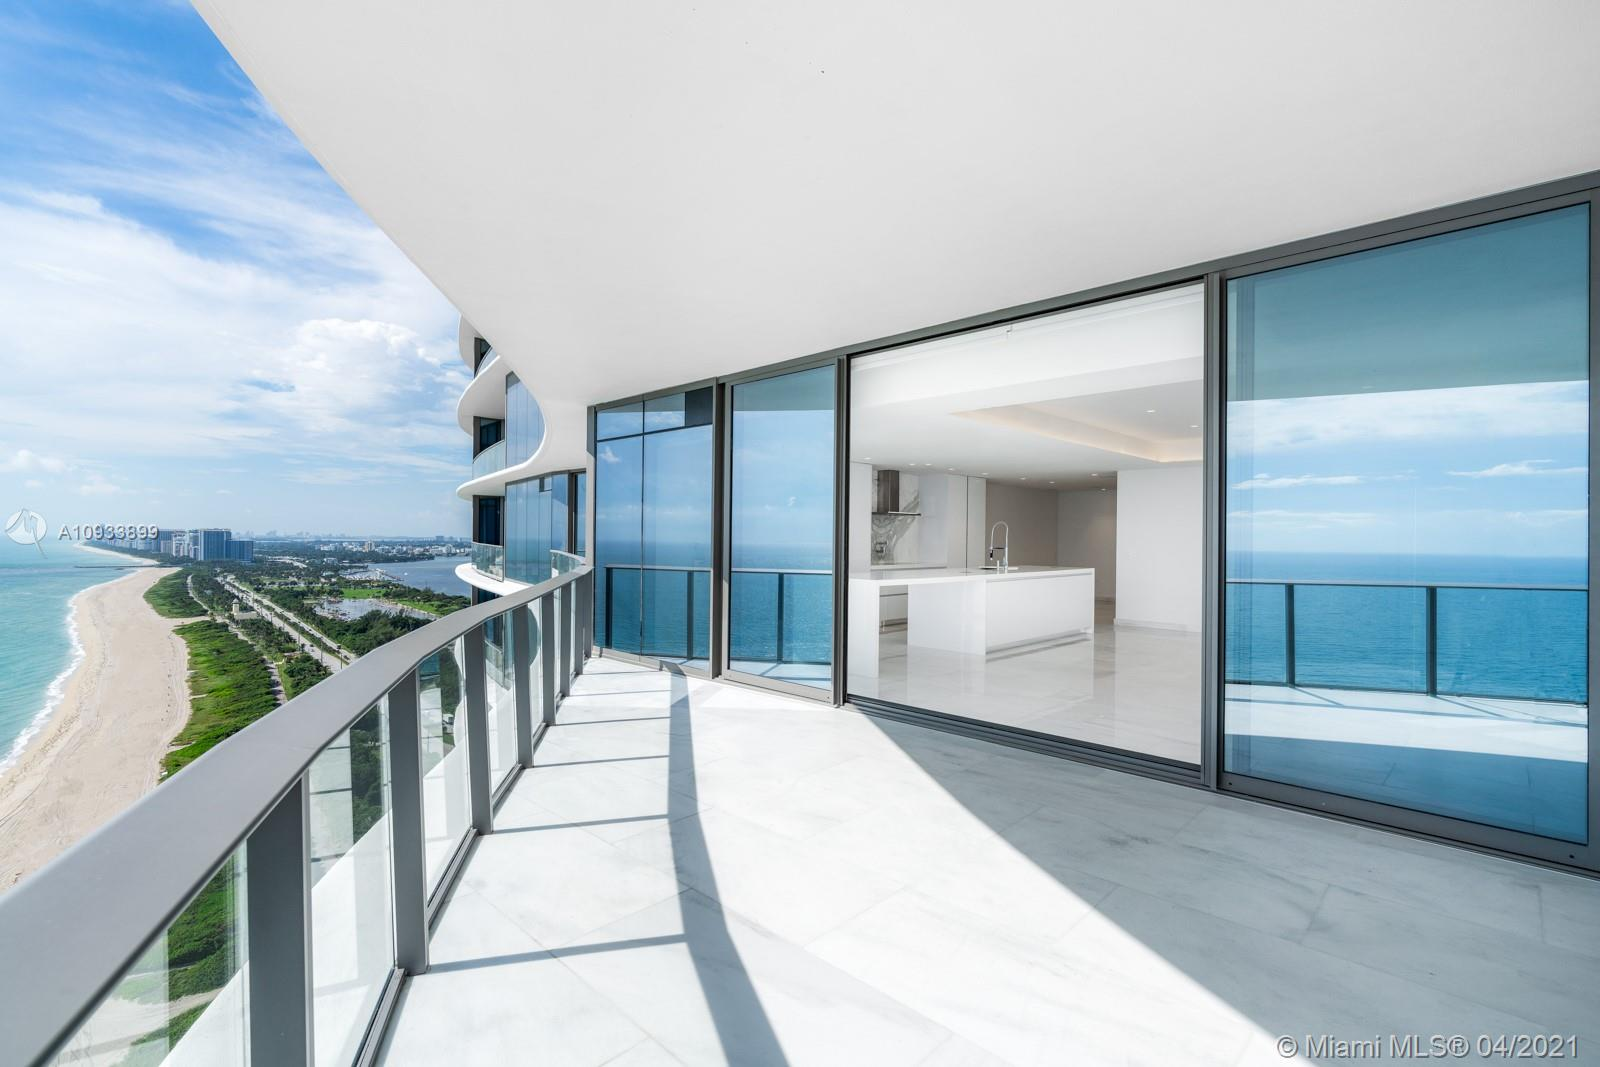 Be one of the first to move into this turnkey oasis in the Ritz Carlton Residences in Sunny Isles Beach. This unit has been completely custom built and finished to perfection. Designed by award-winning Britto Charette, this 2,800 sqft 3-bedroom, 3.5-bathroom unit is one of the first and only units that is move-in-ready. The unit features a Snaidero kitchen and Gaggenau appliances,a complete Control4 home automation system, Seura mirrors, in-celling speakers, Hunter Douglas window treatments, knife edge soffits, Akira millwork, pasha white marble throughout and custom Ornare closets. This unique property has all of the amenities and services that would be expected from a Ritz Carlton resort.